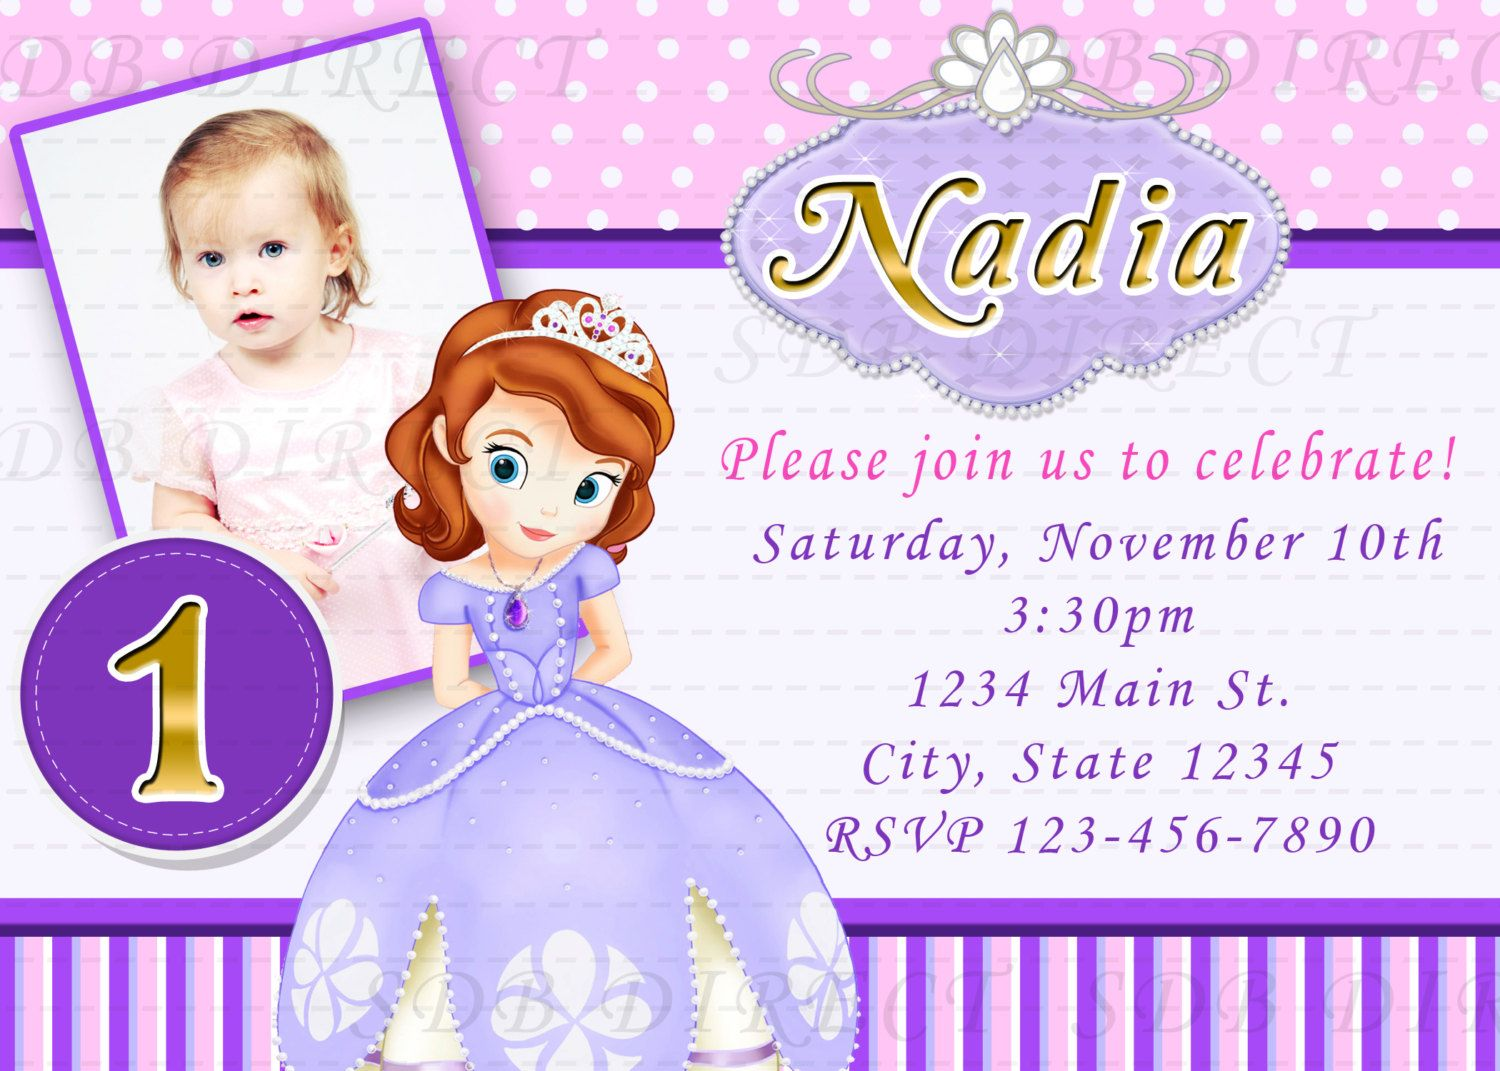 Cute sofia the first digital birthday party invitations diy print cute sofia the first digital birthday party invitations diy print 999 via etsy stopboris Images